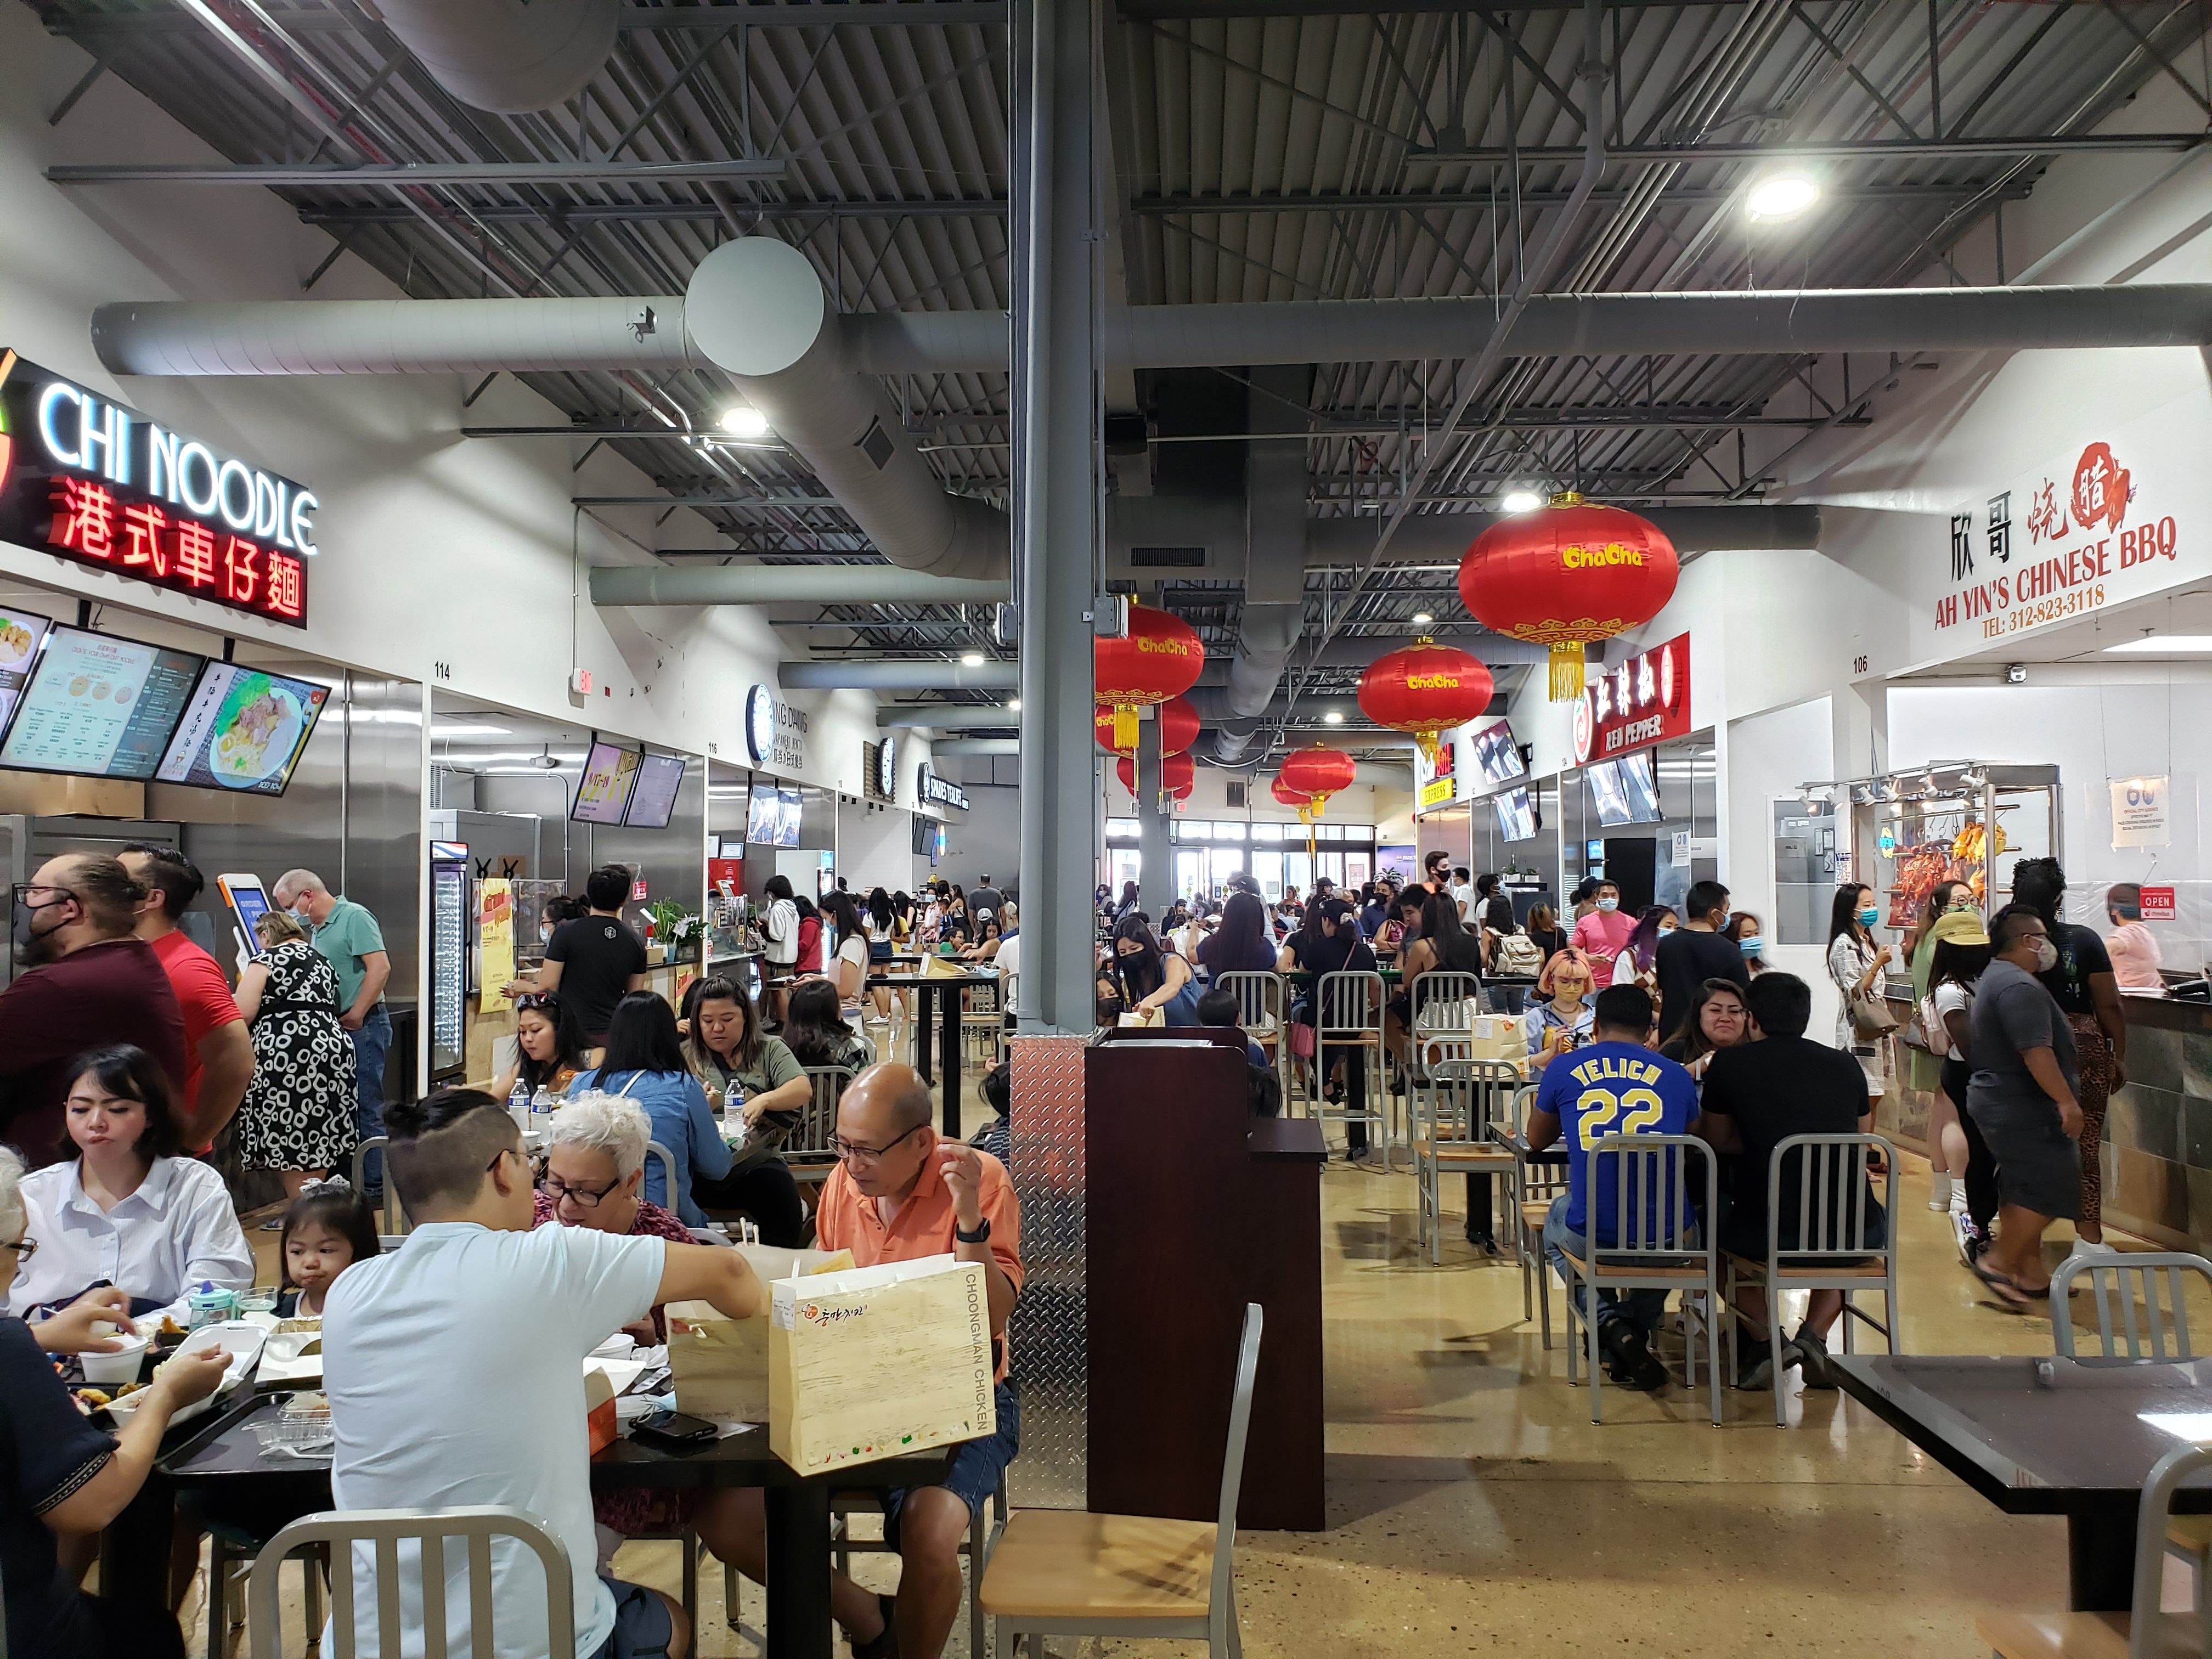 People eating in an Asian food court.